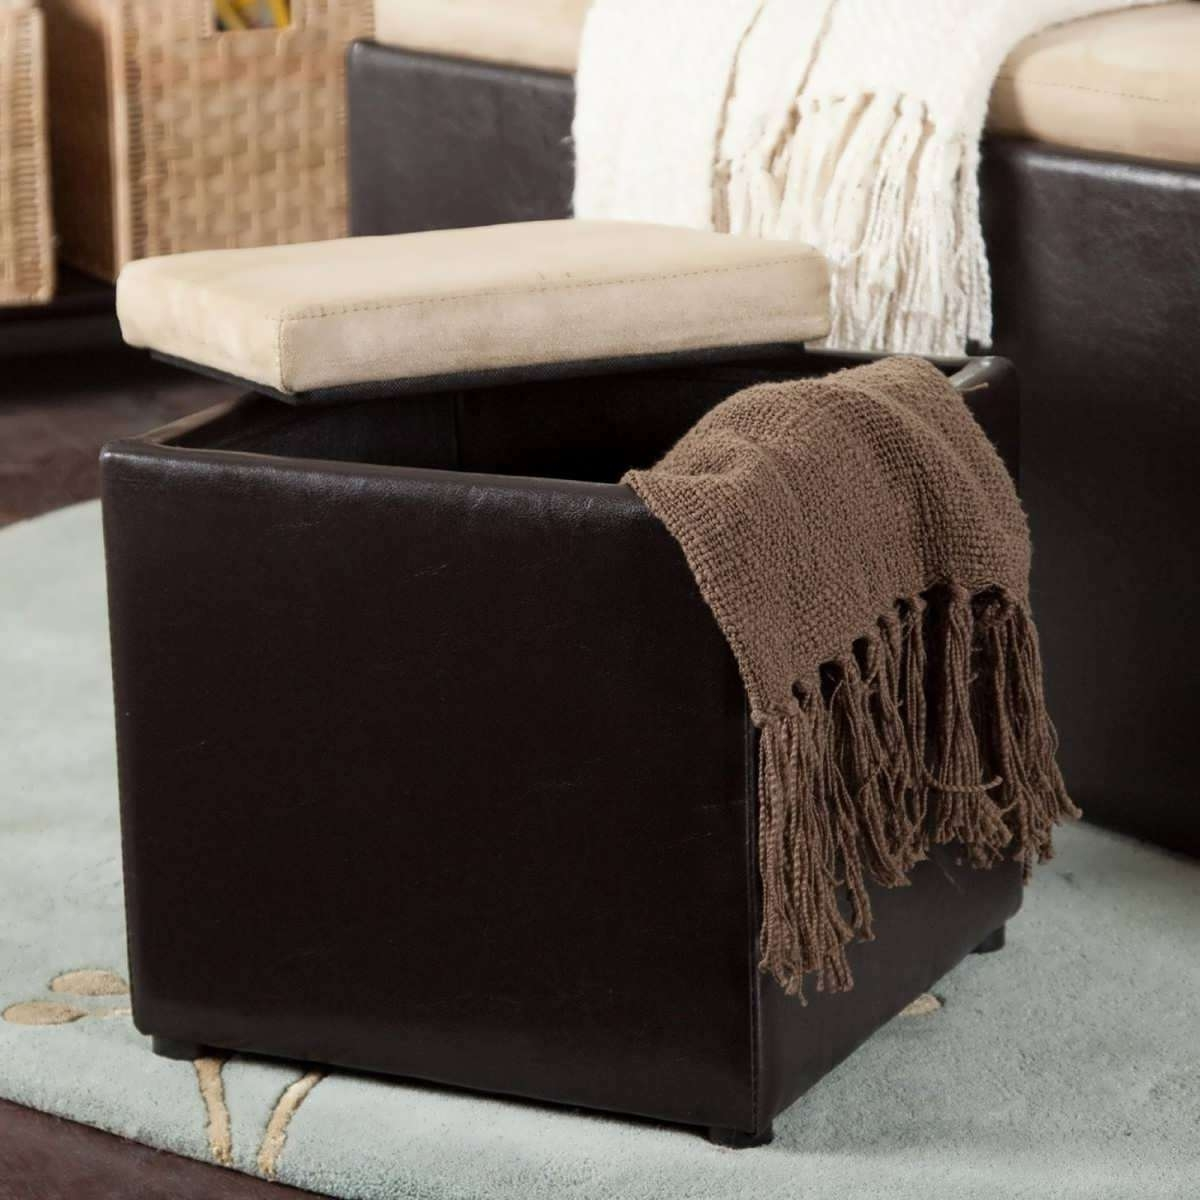 Widely Used Leopard Ottoman Coffee Tables Inside Animal Print Ottoman Coffee Table • Coffee Table Design (View 10 of 20)